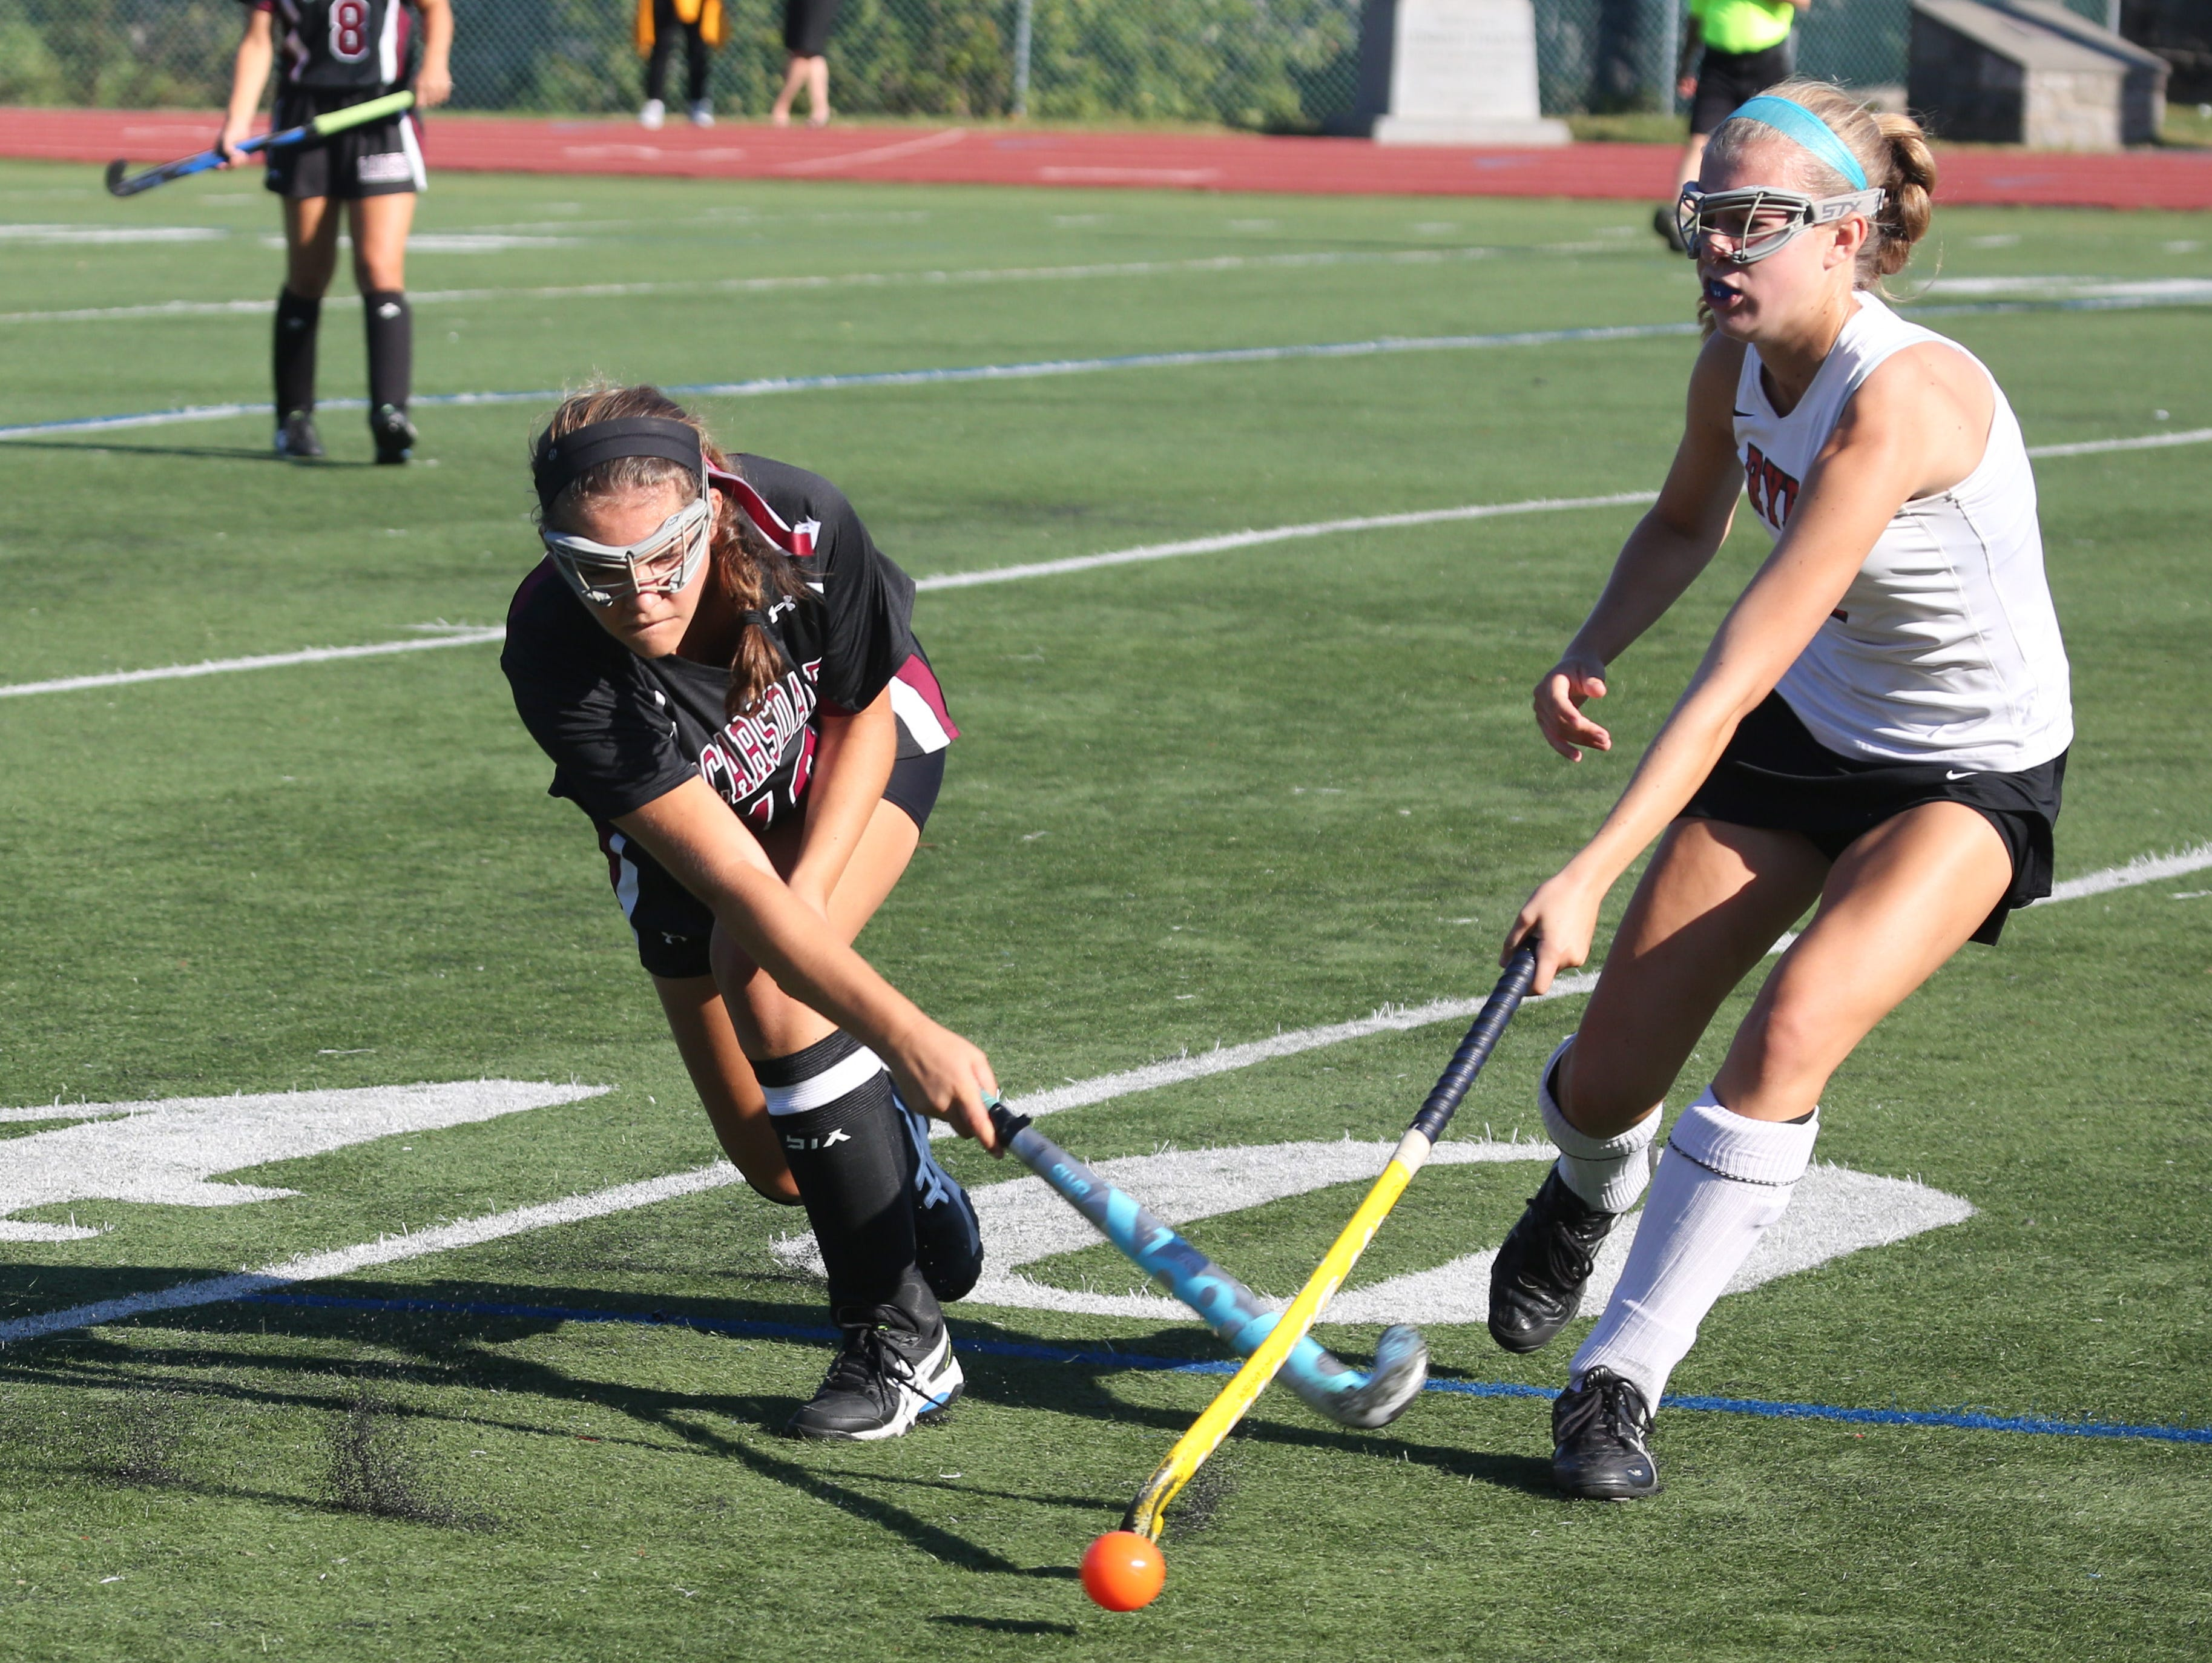 Scarsdale's Olivia Henkoff tries to get a shot past Rye's Ellie O'Callaghan during their field hockey game in Rye, Sept. 24, 2015. Rye beat Scarsdale, 3-1.